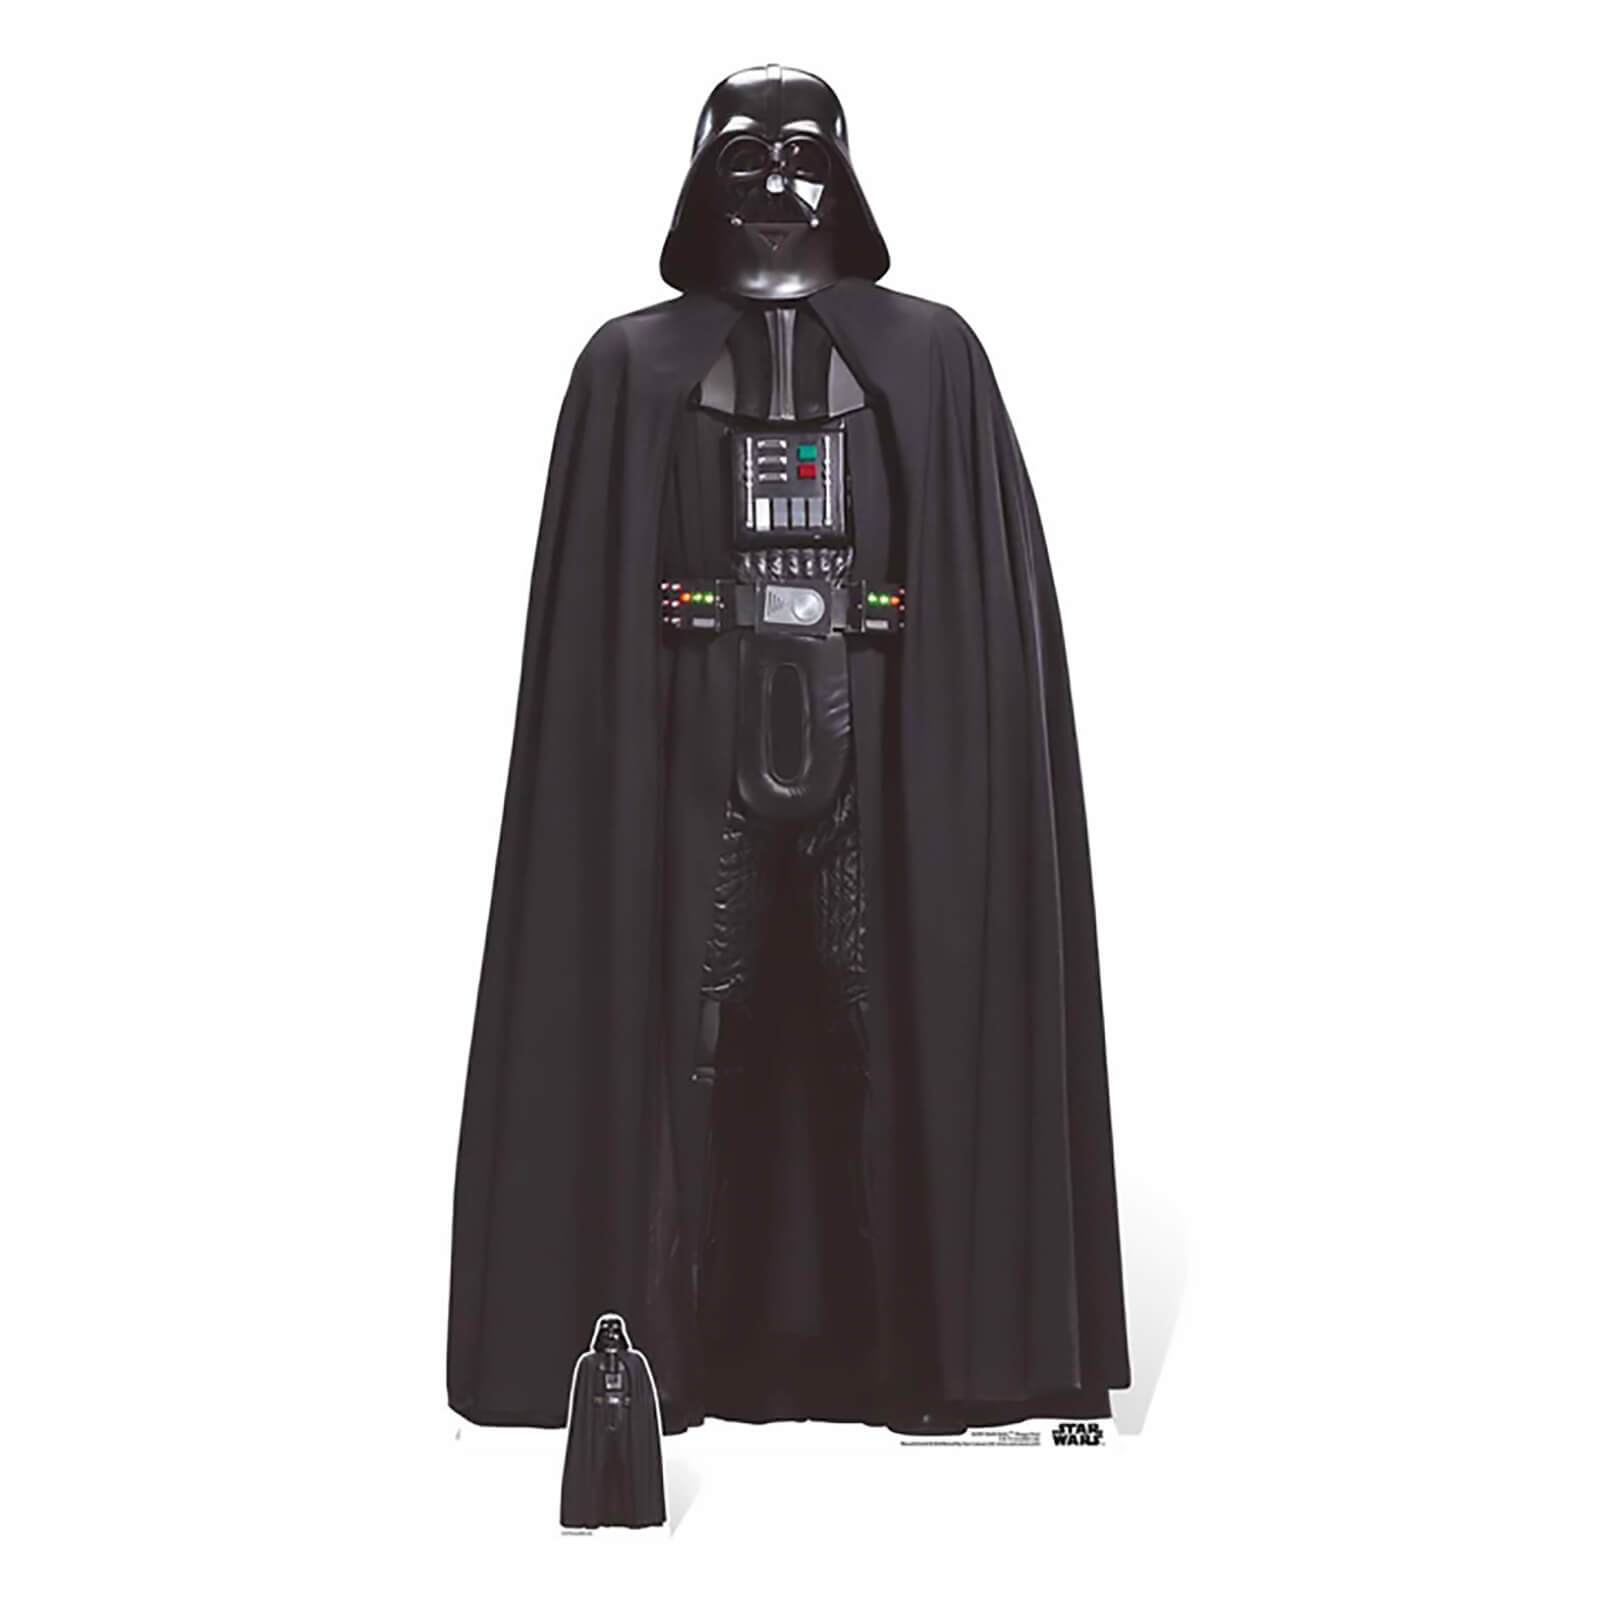 Image of Star Wars: Rogue One - Darth Vader Lifesize Cardboard Cut Out